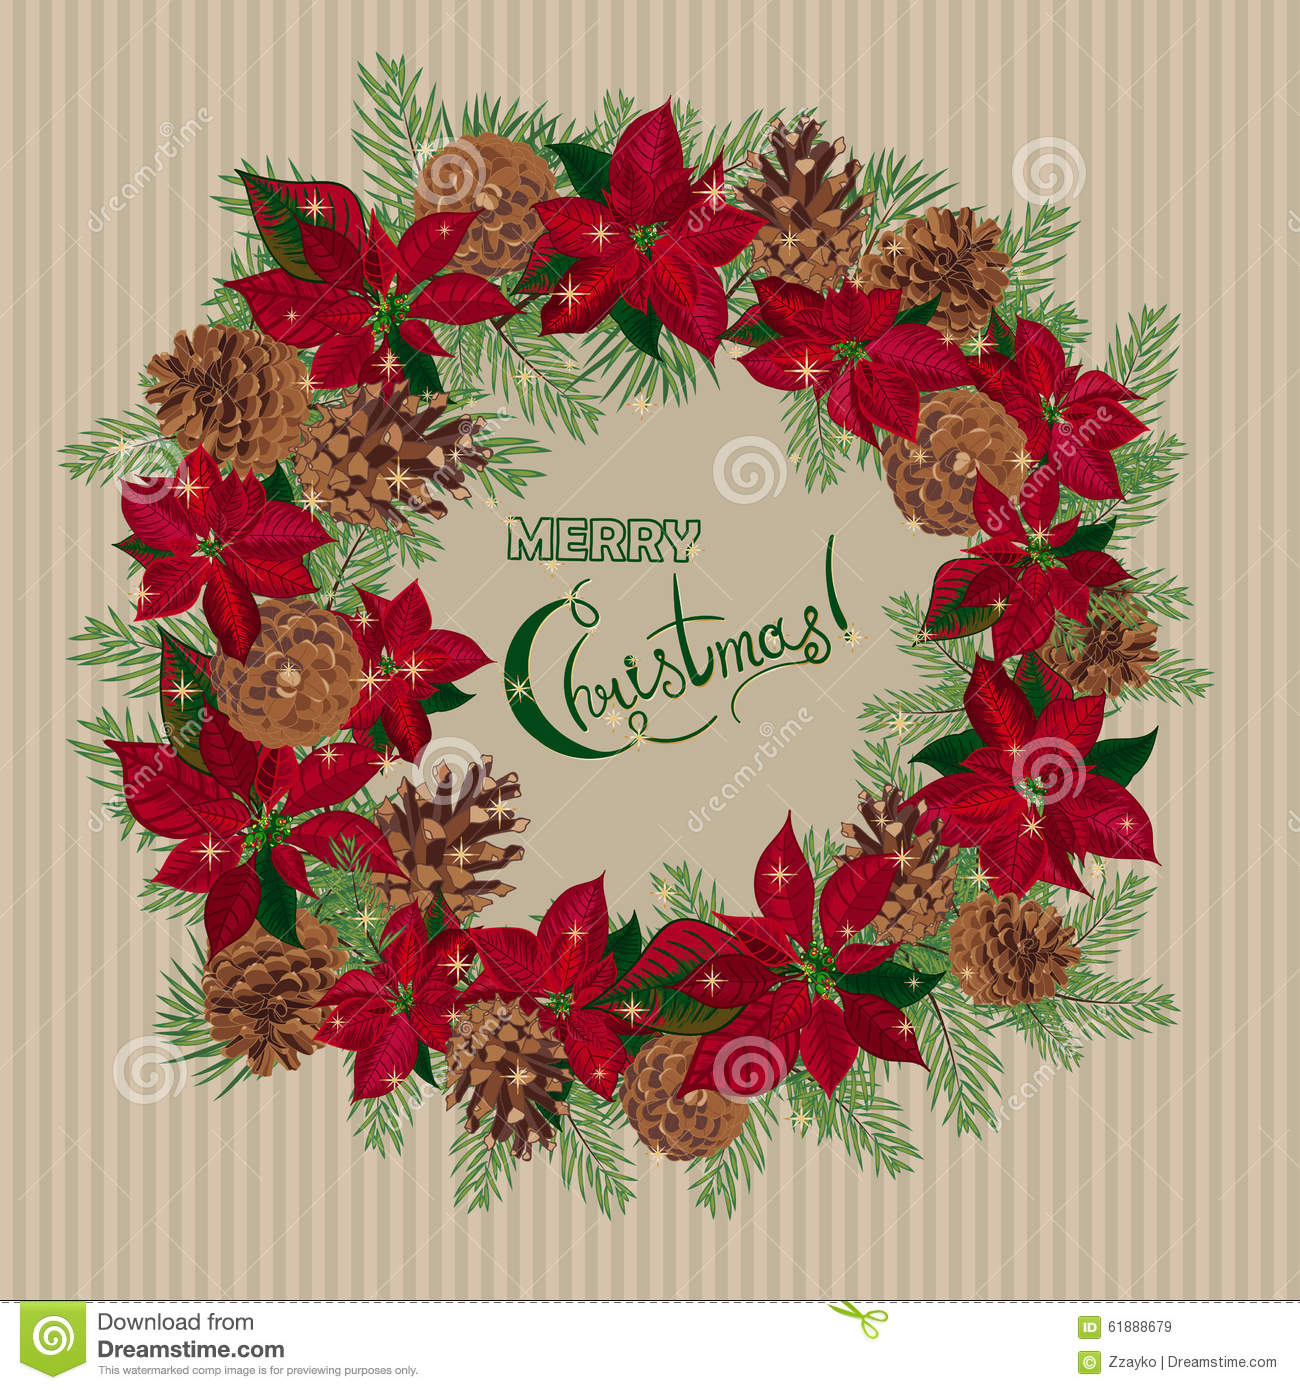 Vintage Christmas Card With Wreath Of Pine Cones And